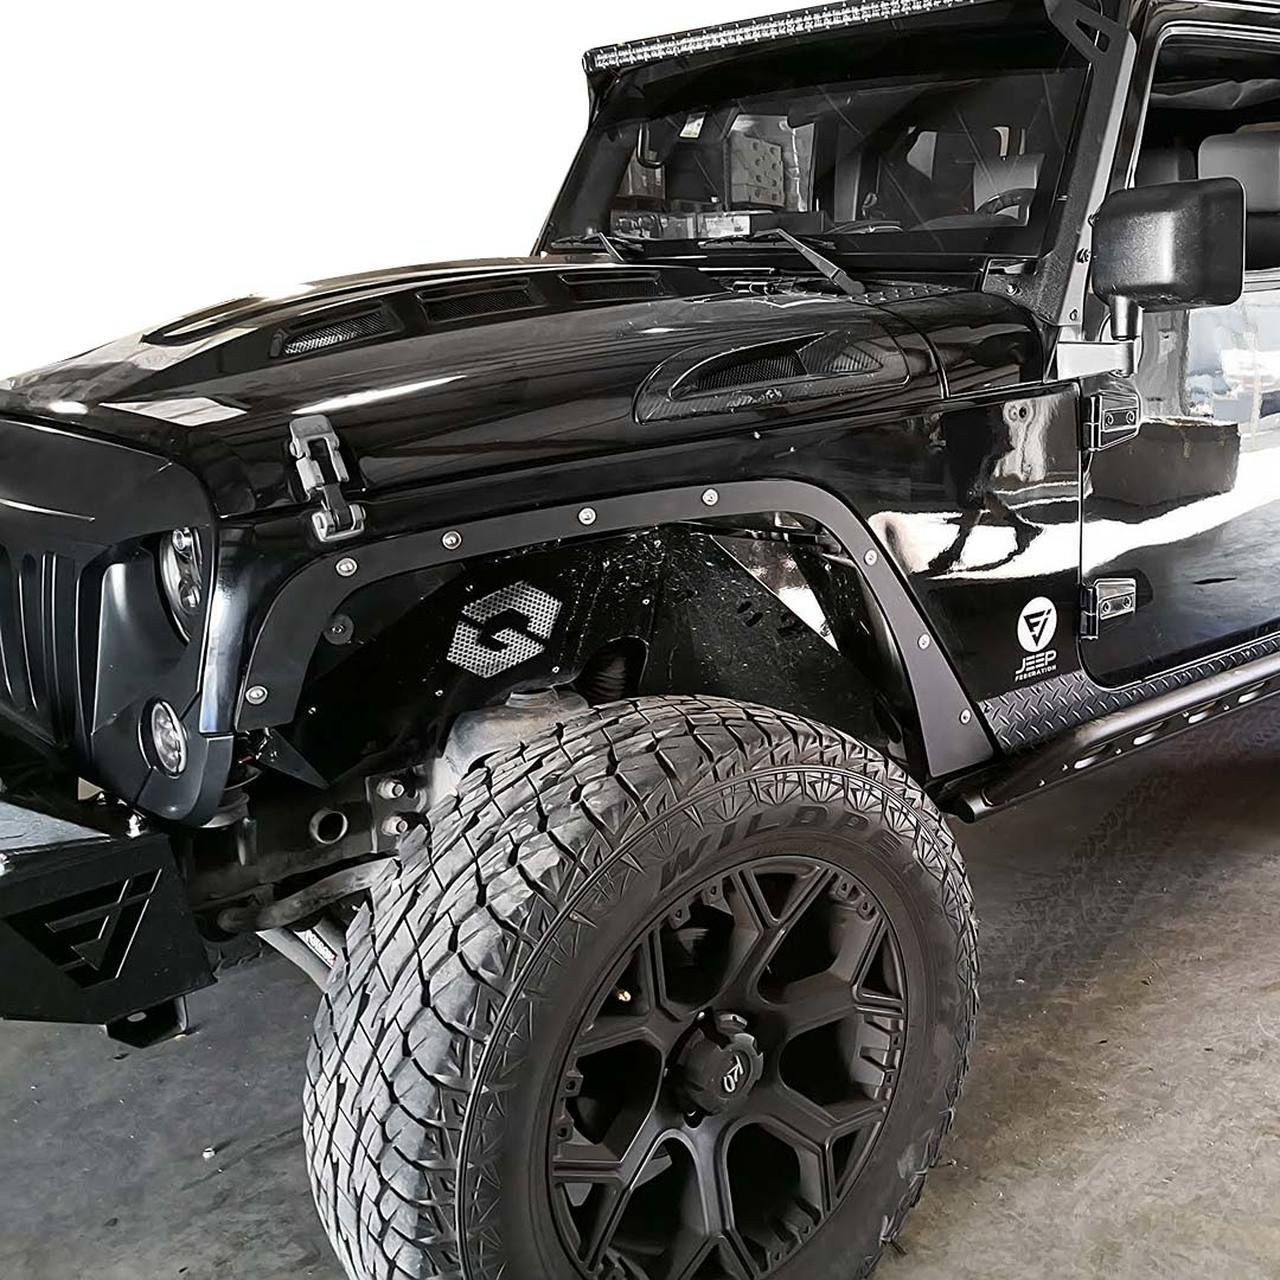 Pin By Bruce Burt On Jeep Dream Cars Jeep Badass Jeep Jeep Owners